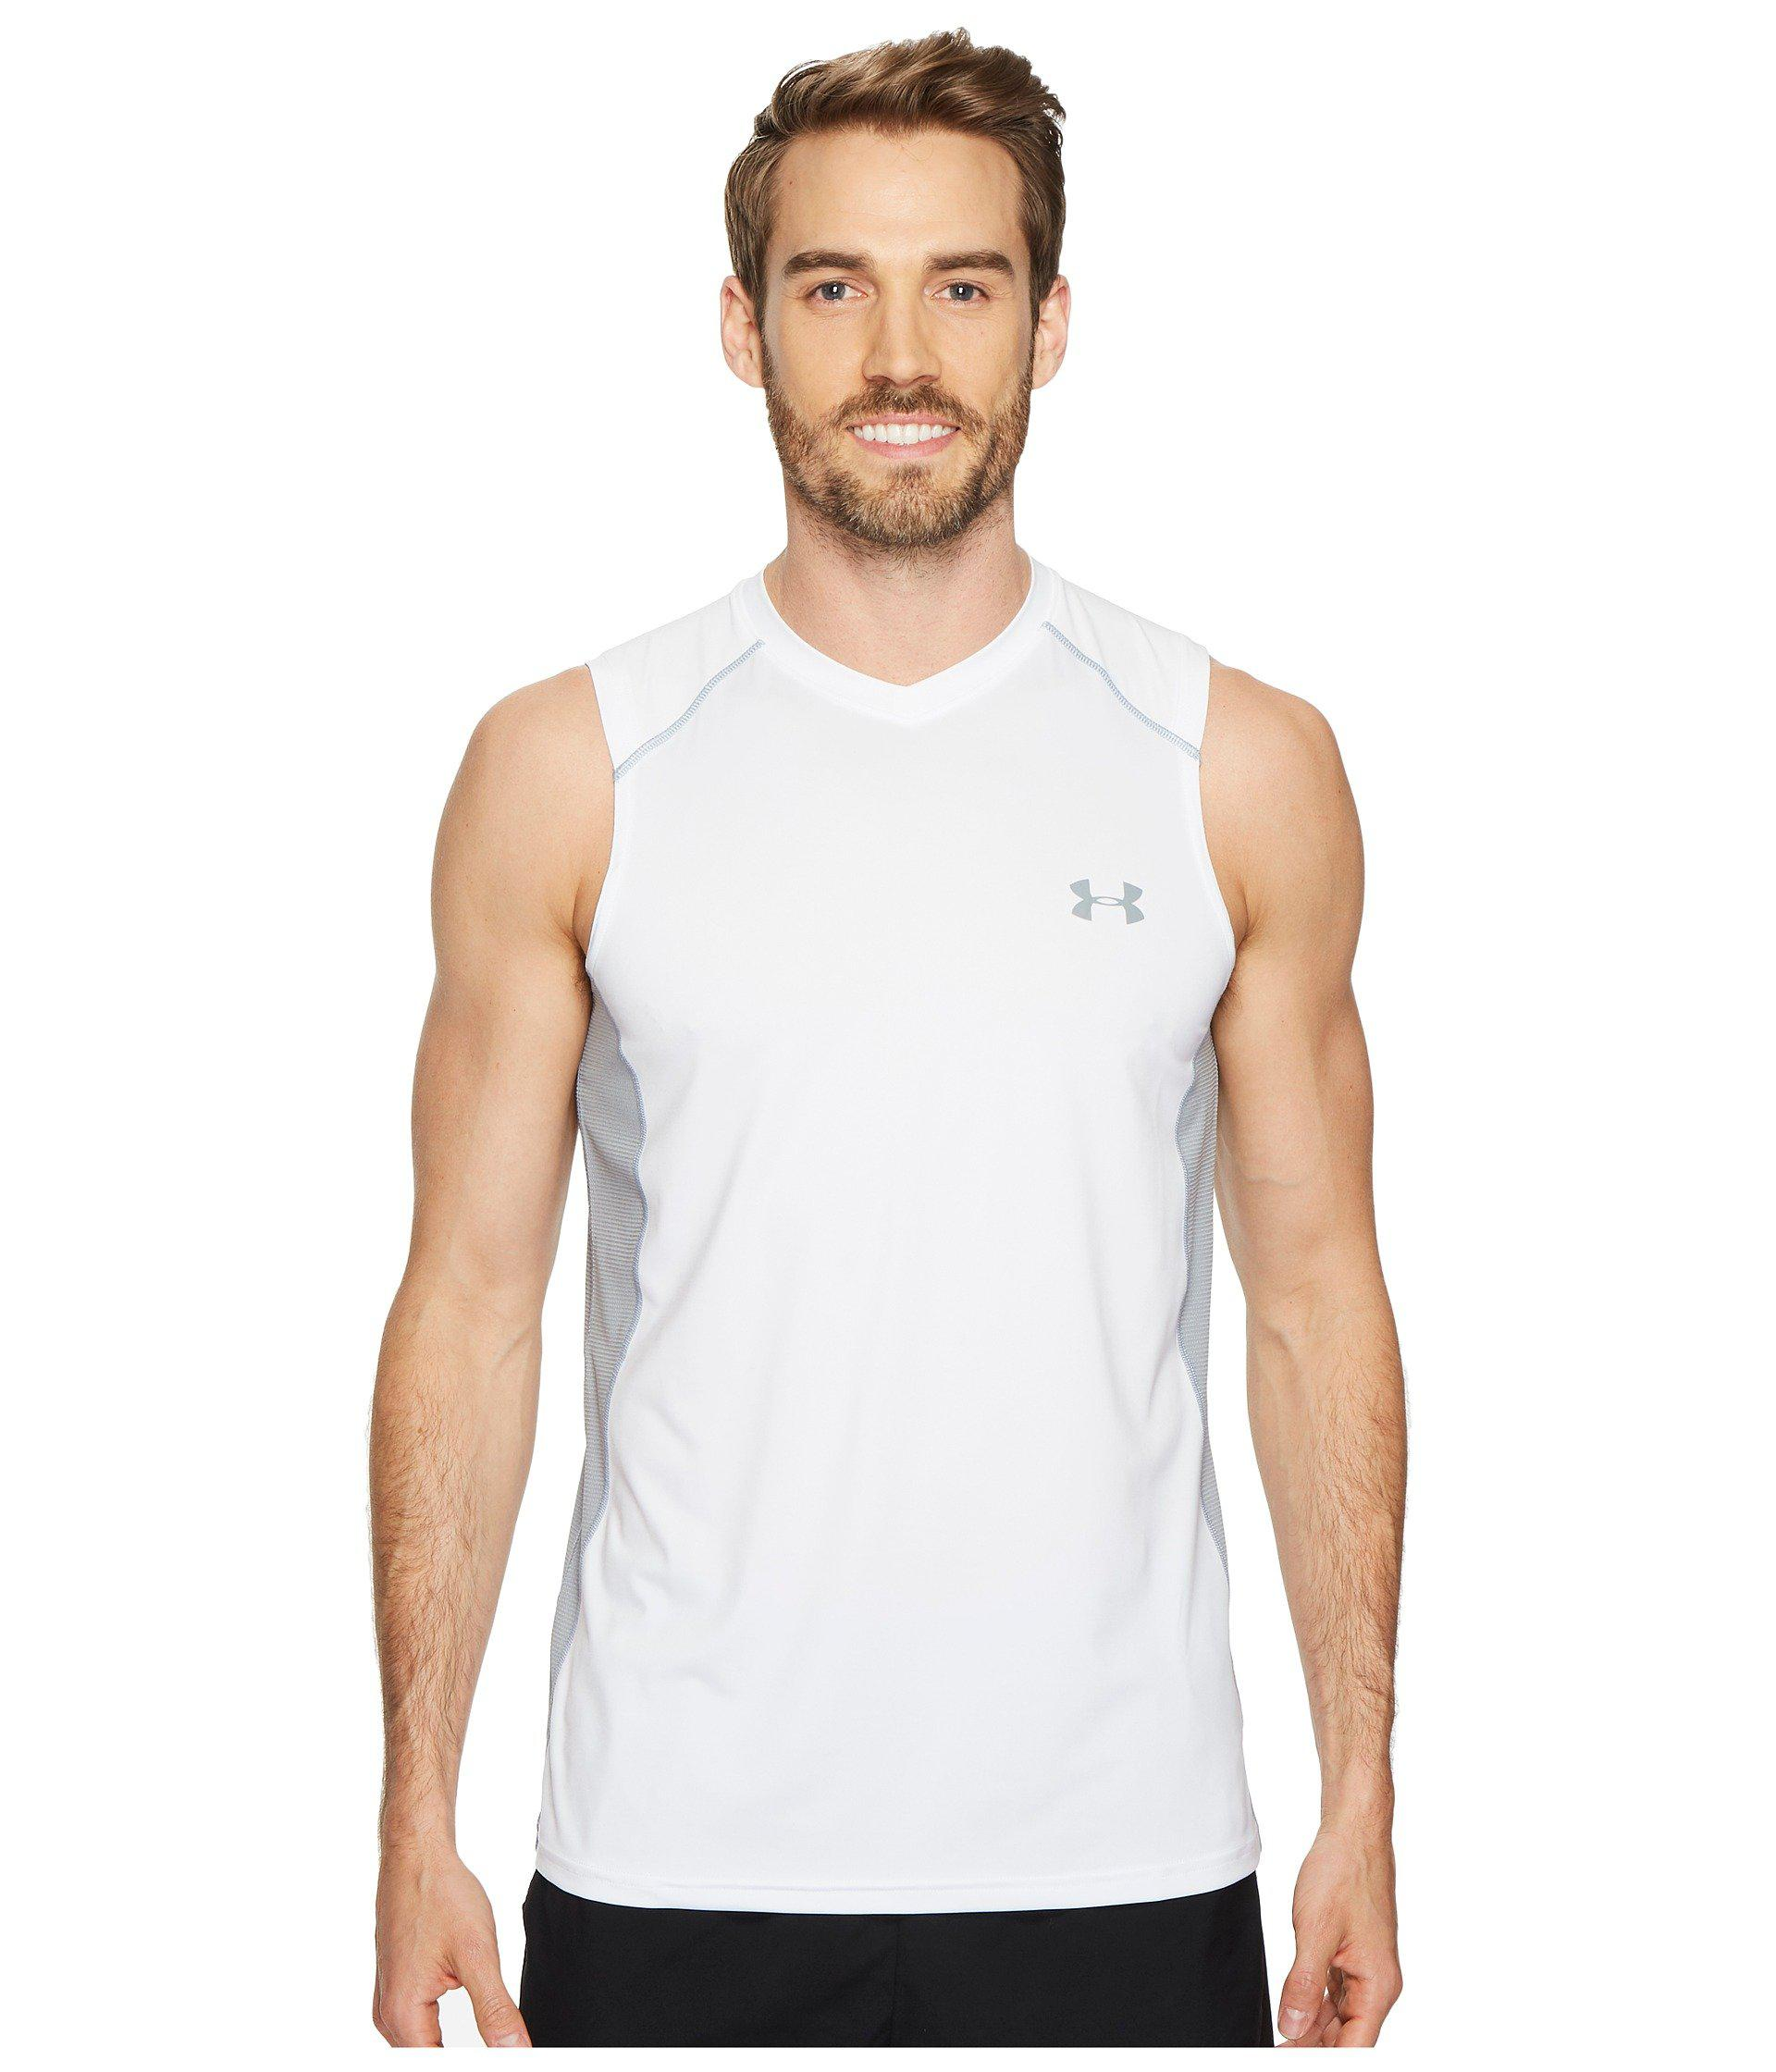 bfb098c72d165 Lyst - Under Armour Raid Sleeveless Tee in White for Men - Save 4%